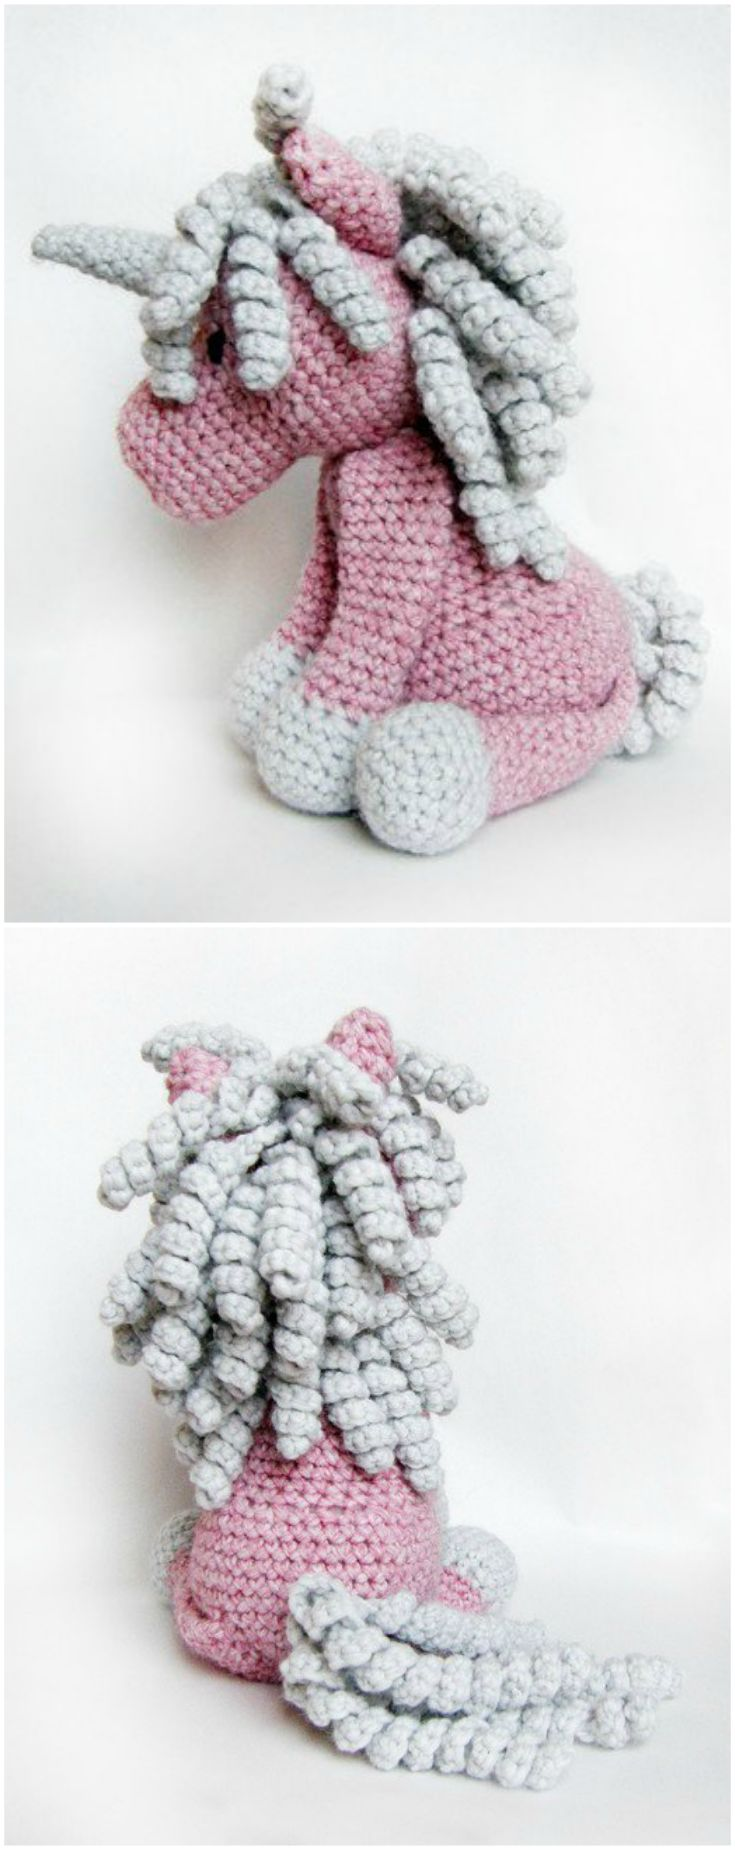 Häkelanleitung für ein süßes Einhorn mit Ringellocken, Häkeltiere / crochet ebook for a magic unicorn, amigurumi made by Froschprinzessin via DaWanda.com